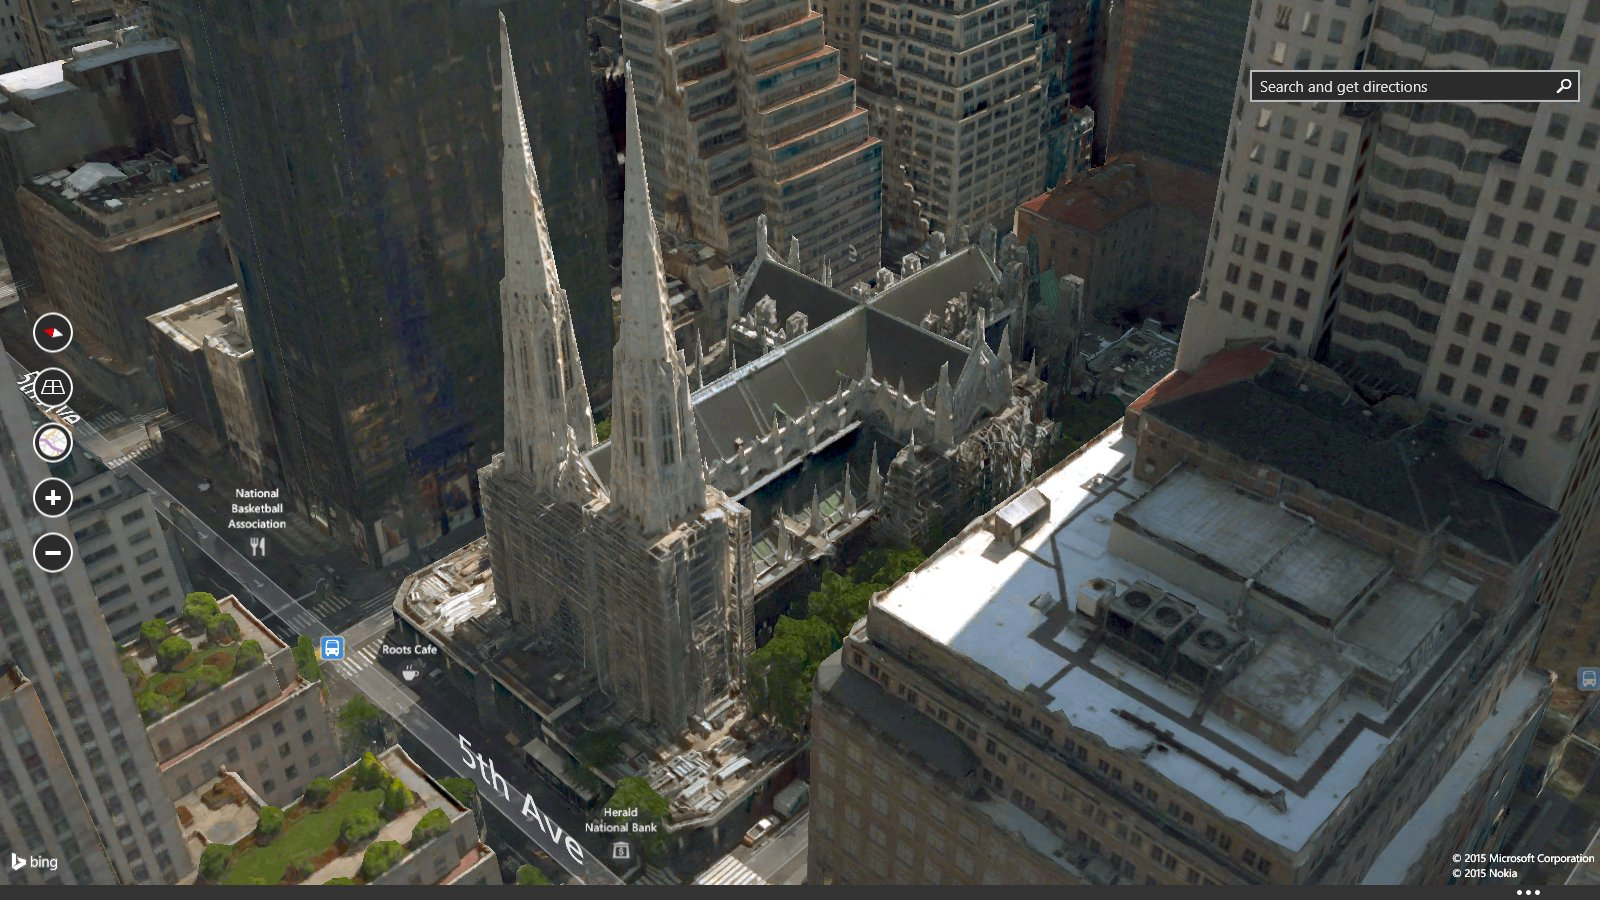 3d bing maps with Celebrate St Patricks Day With Bing Maps on Pirate Ghost Ship 184874380 as well Trousers Point  Flinders Island besides Celebrate St Patricks Day With Bing Maps further New York City Gets Fresh 3d Imagery additionally 6043573235.